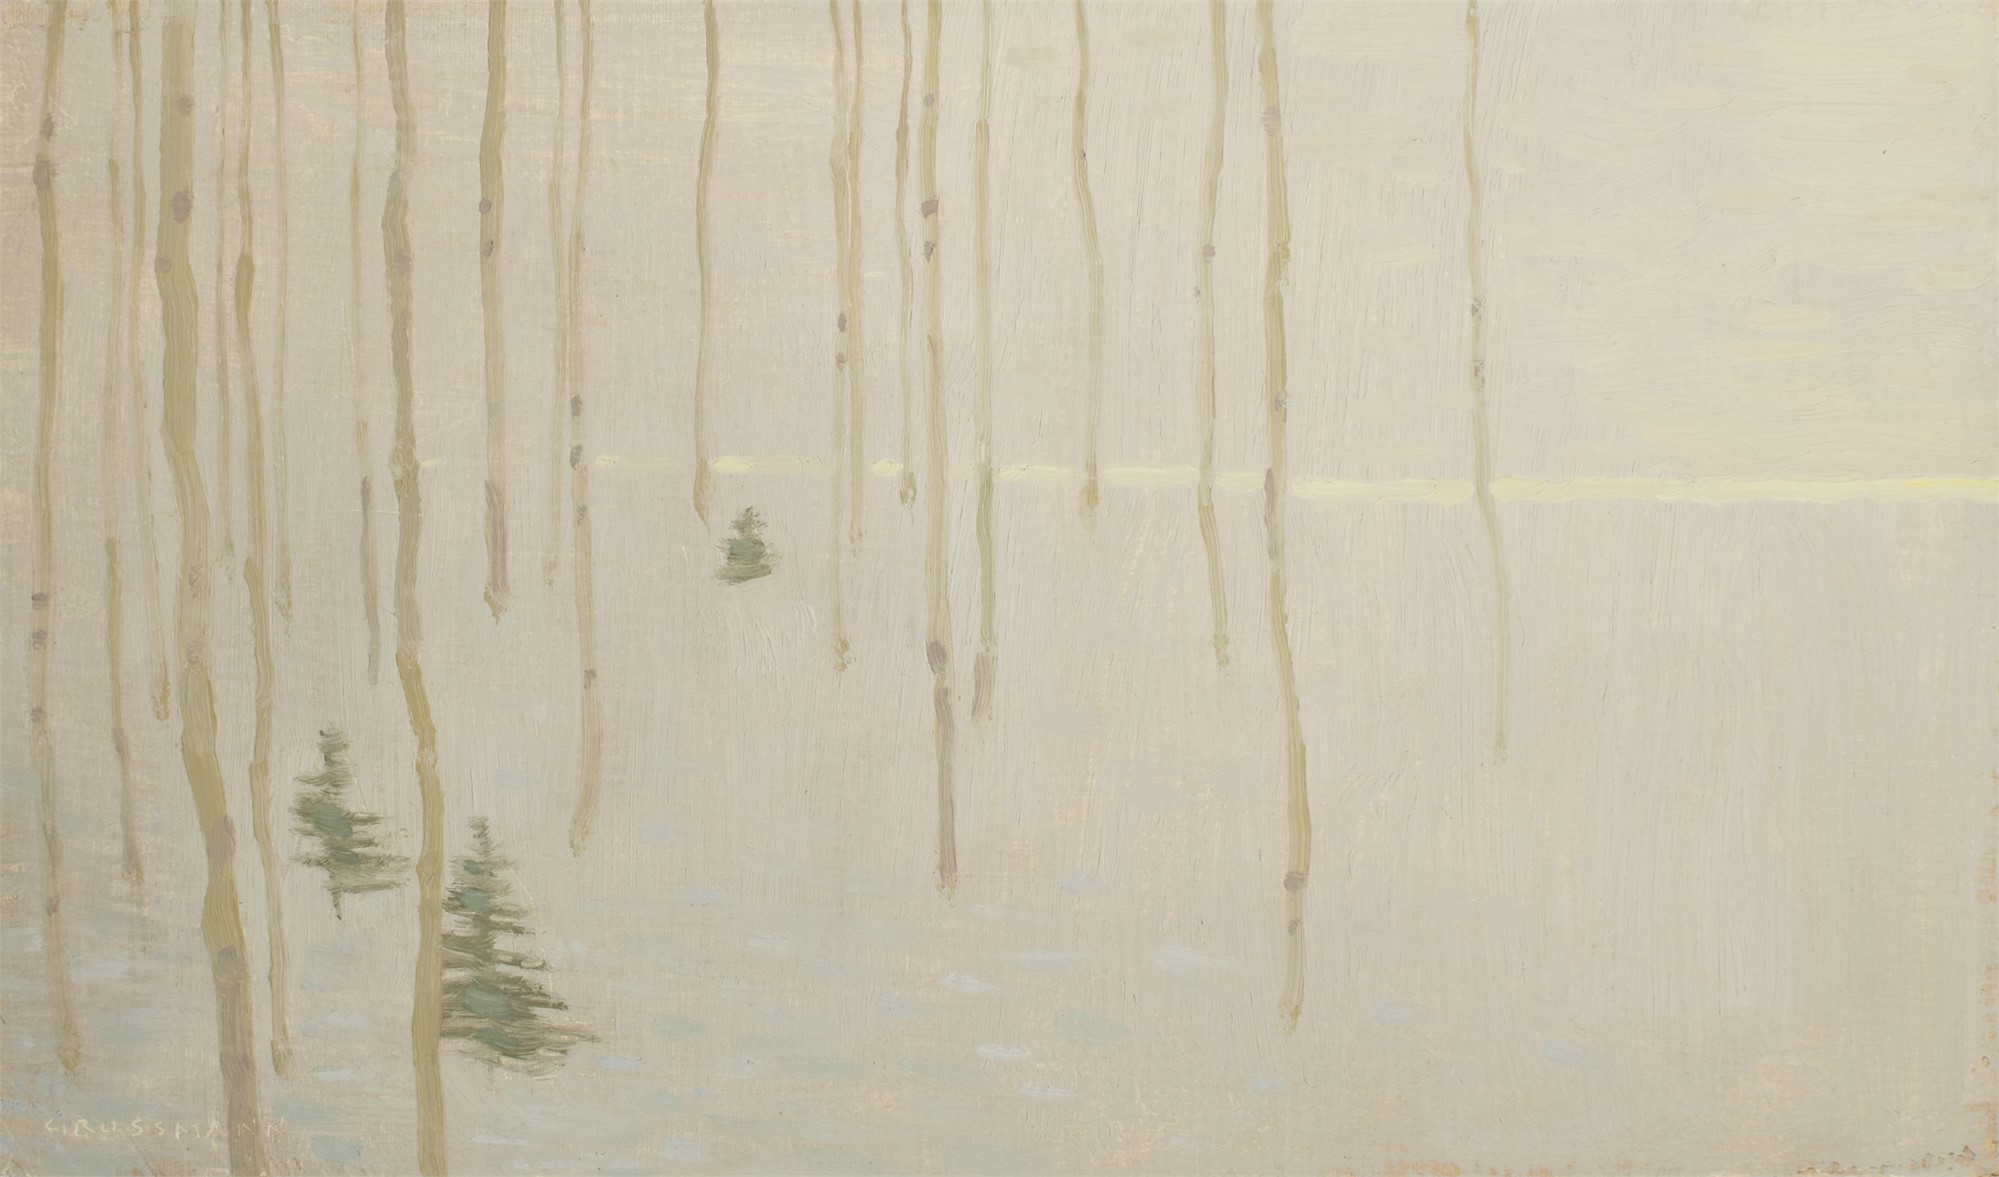 Tree Patterns with Fading Winter Light by David Grossmann